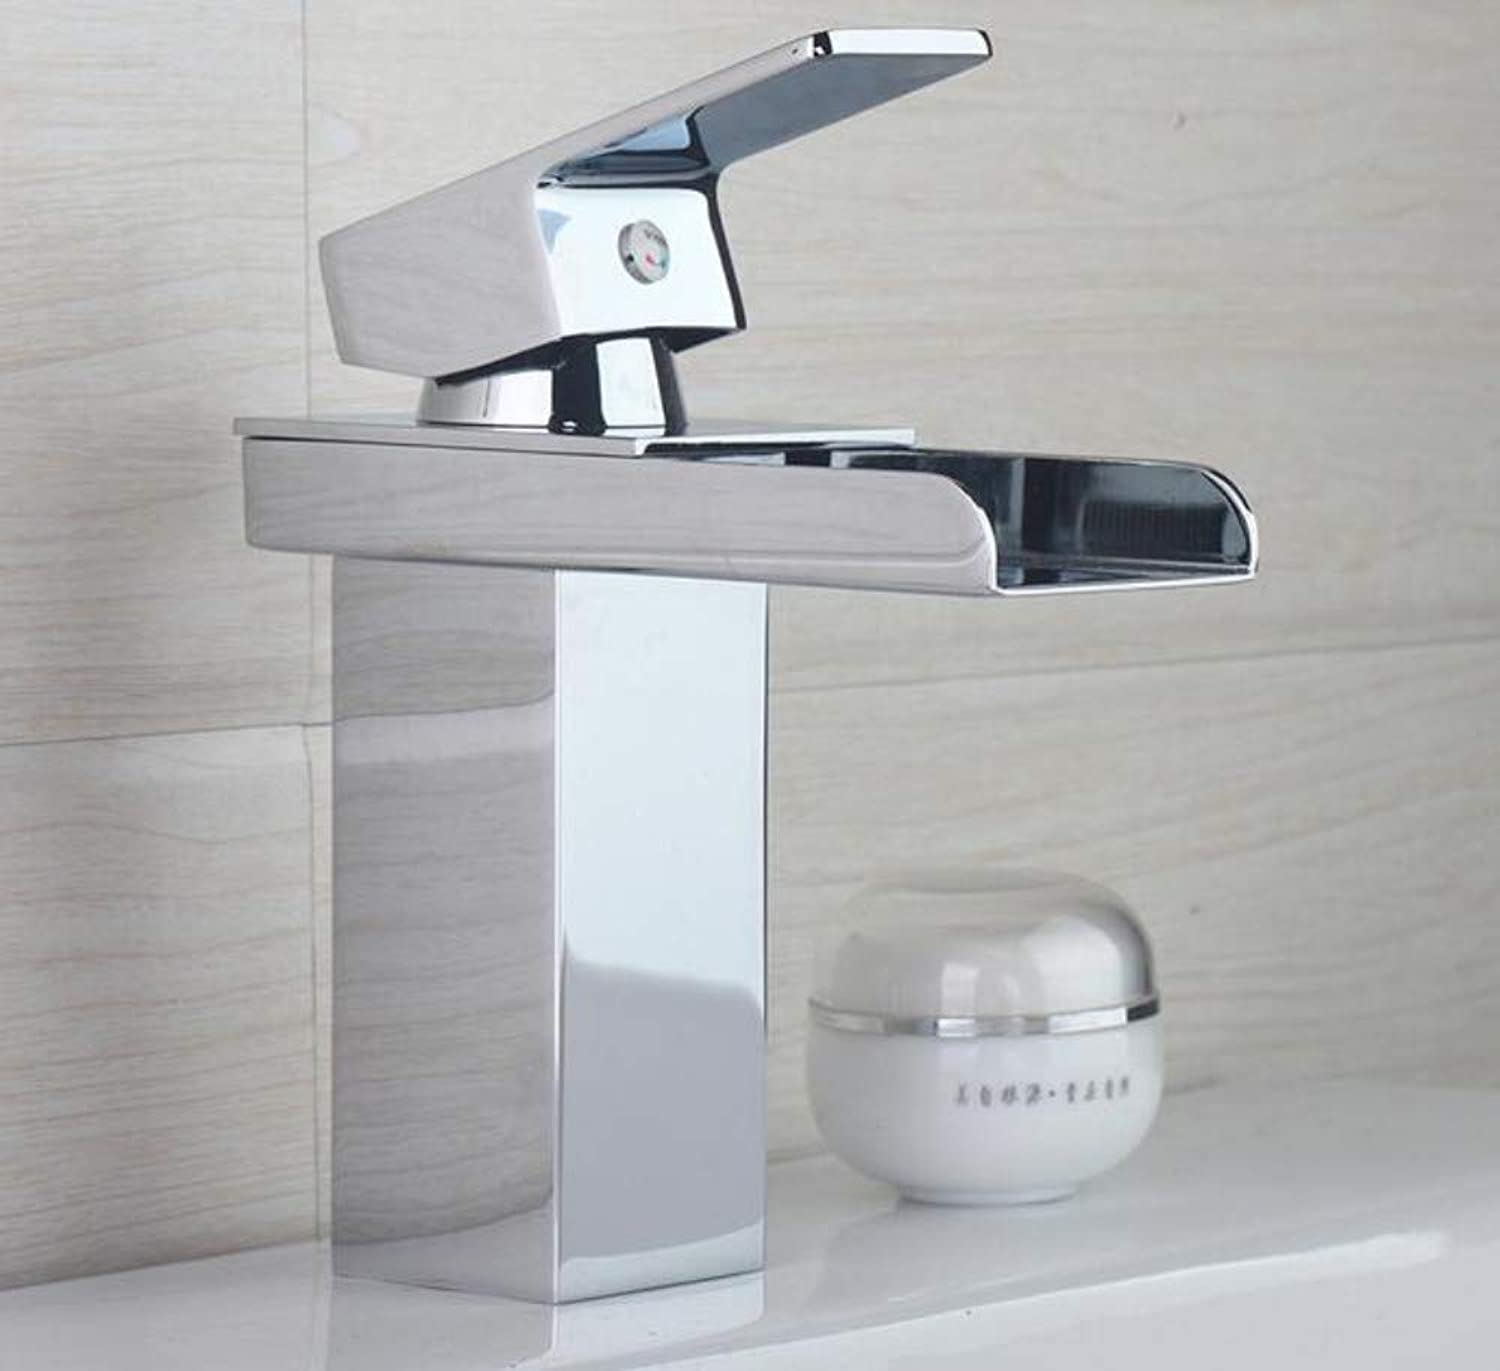 Bathroom Faucet Bathroom Faucets Waterfall Chrome Polish Basin Taps Hot and Cold Water Bathroom Sink Tap Mixer Faucet Torneira